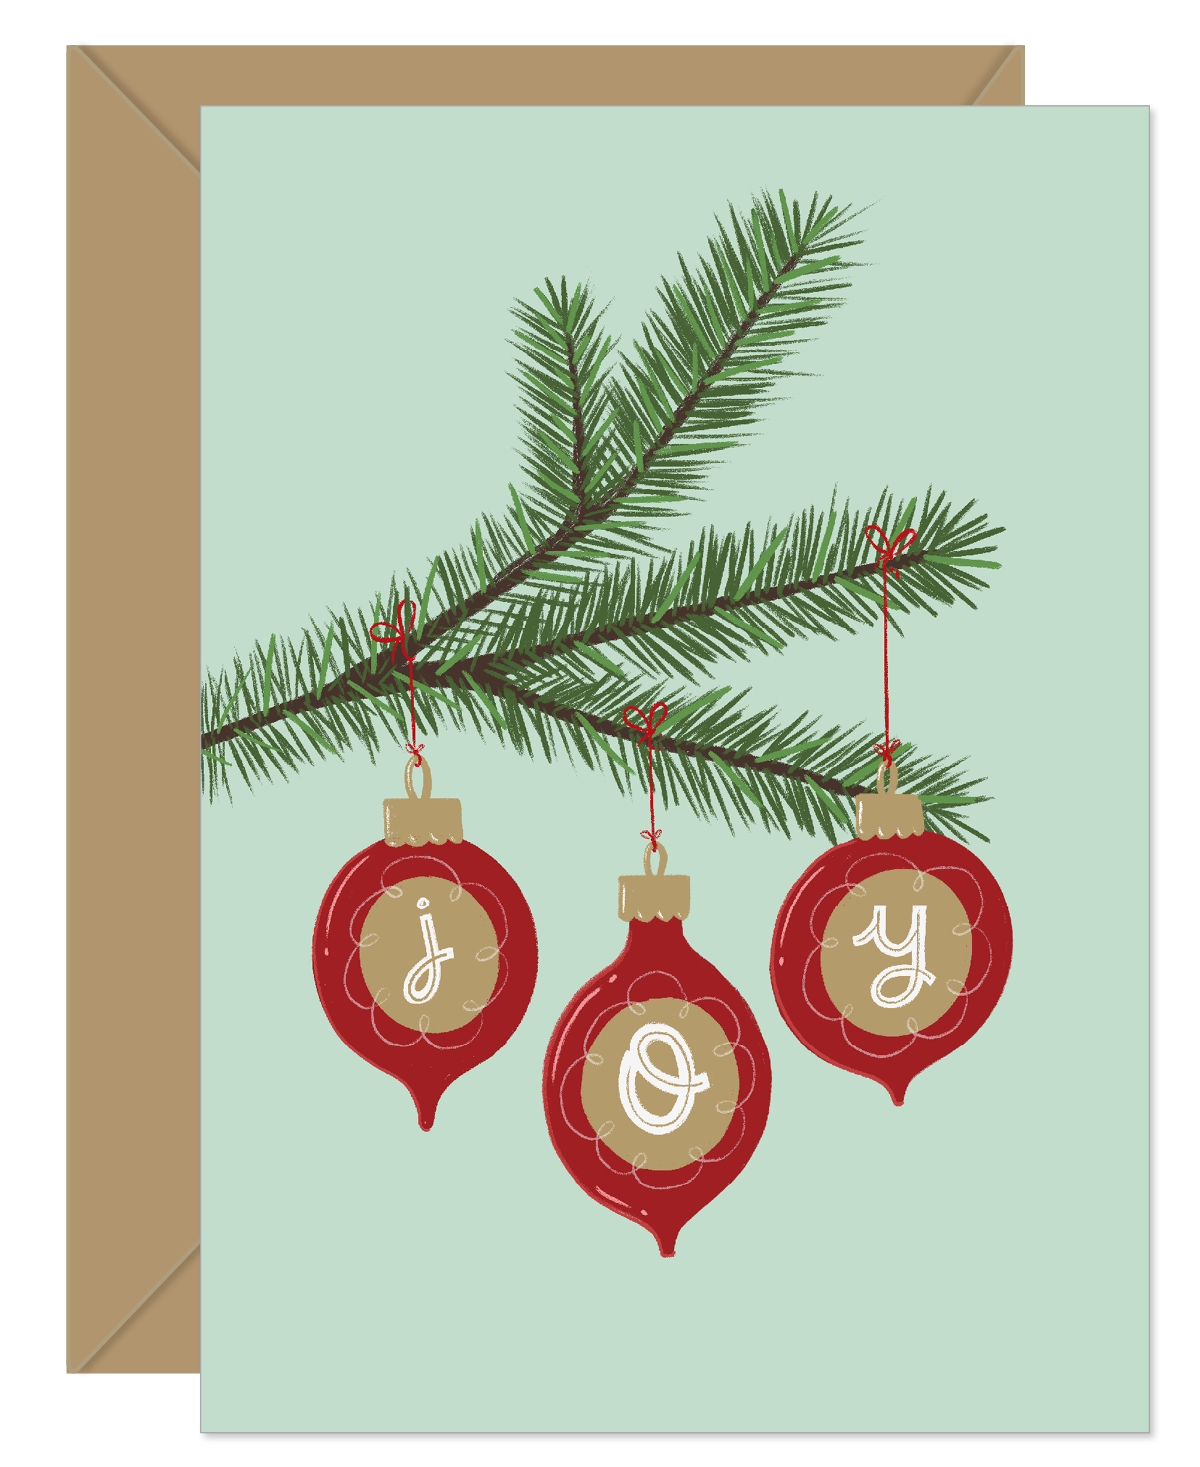 Joy Ornaments on Fir Tree Holiday Card